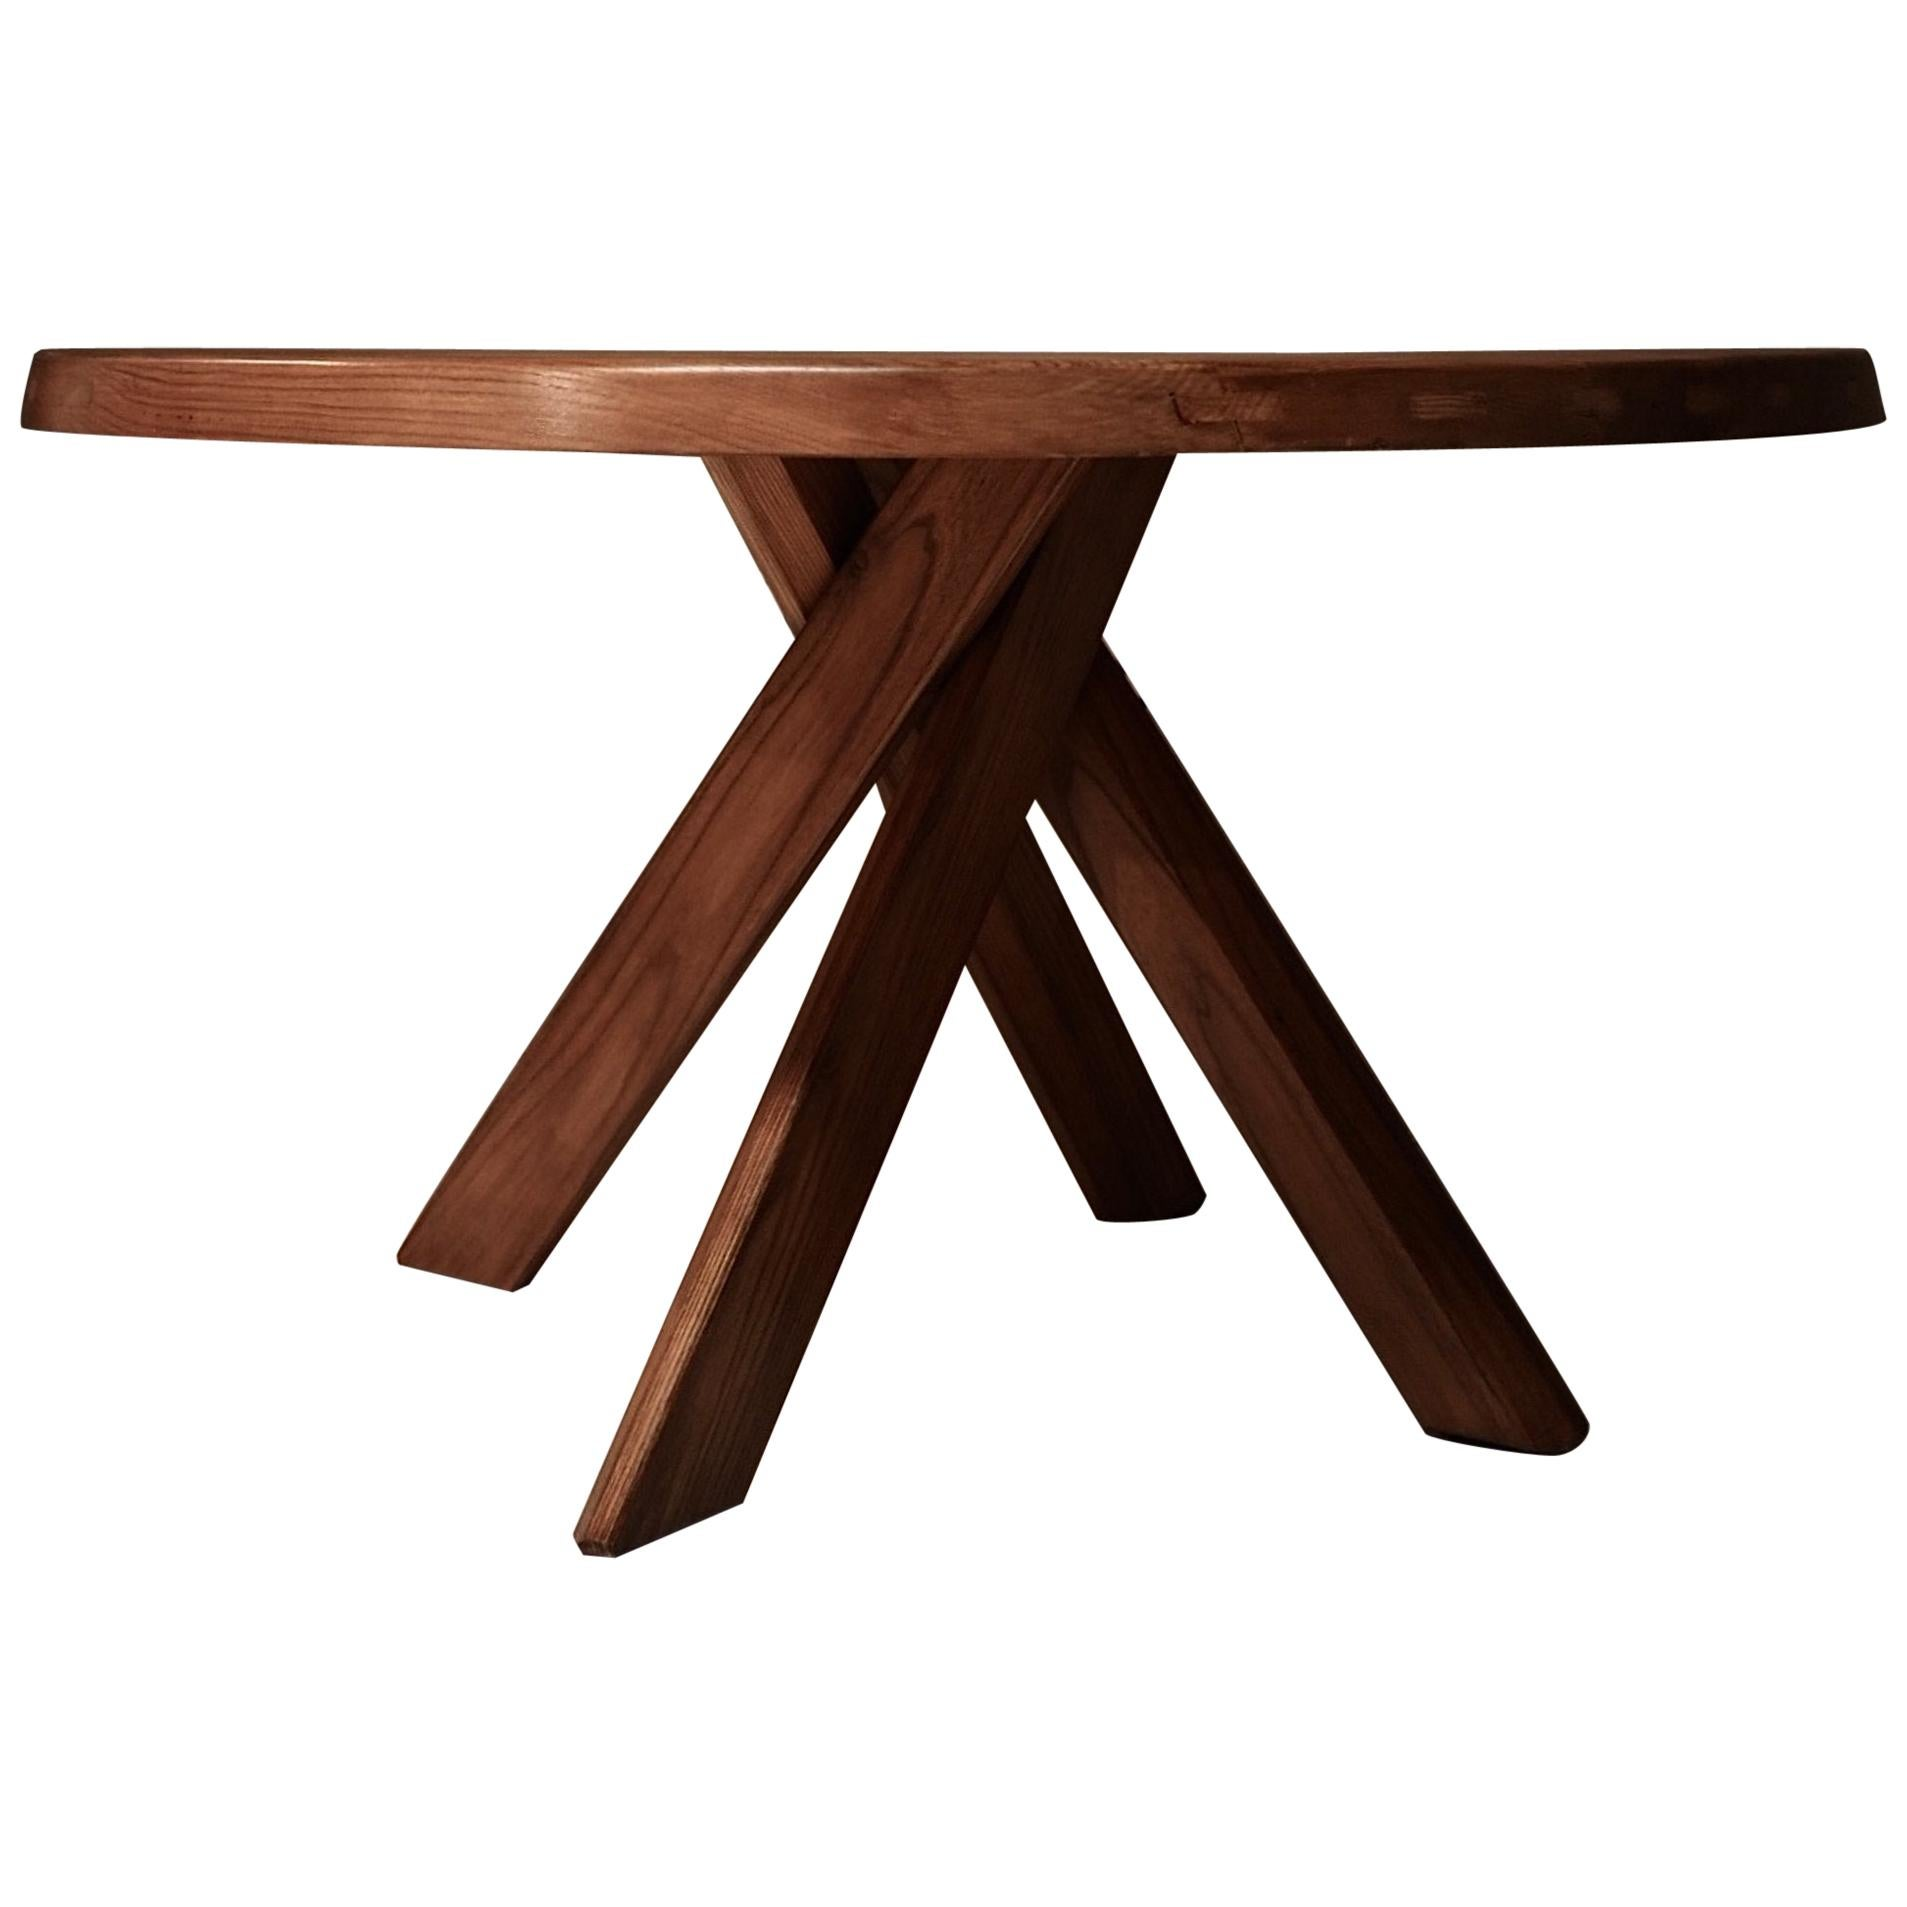 Pierre Chapo T21 Dining Table, 1960s